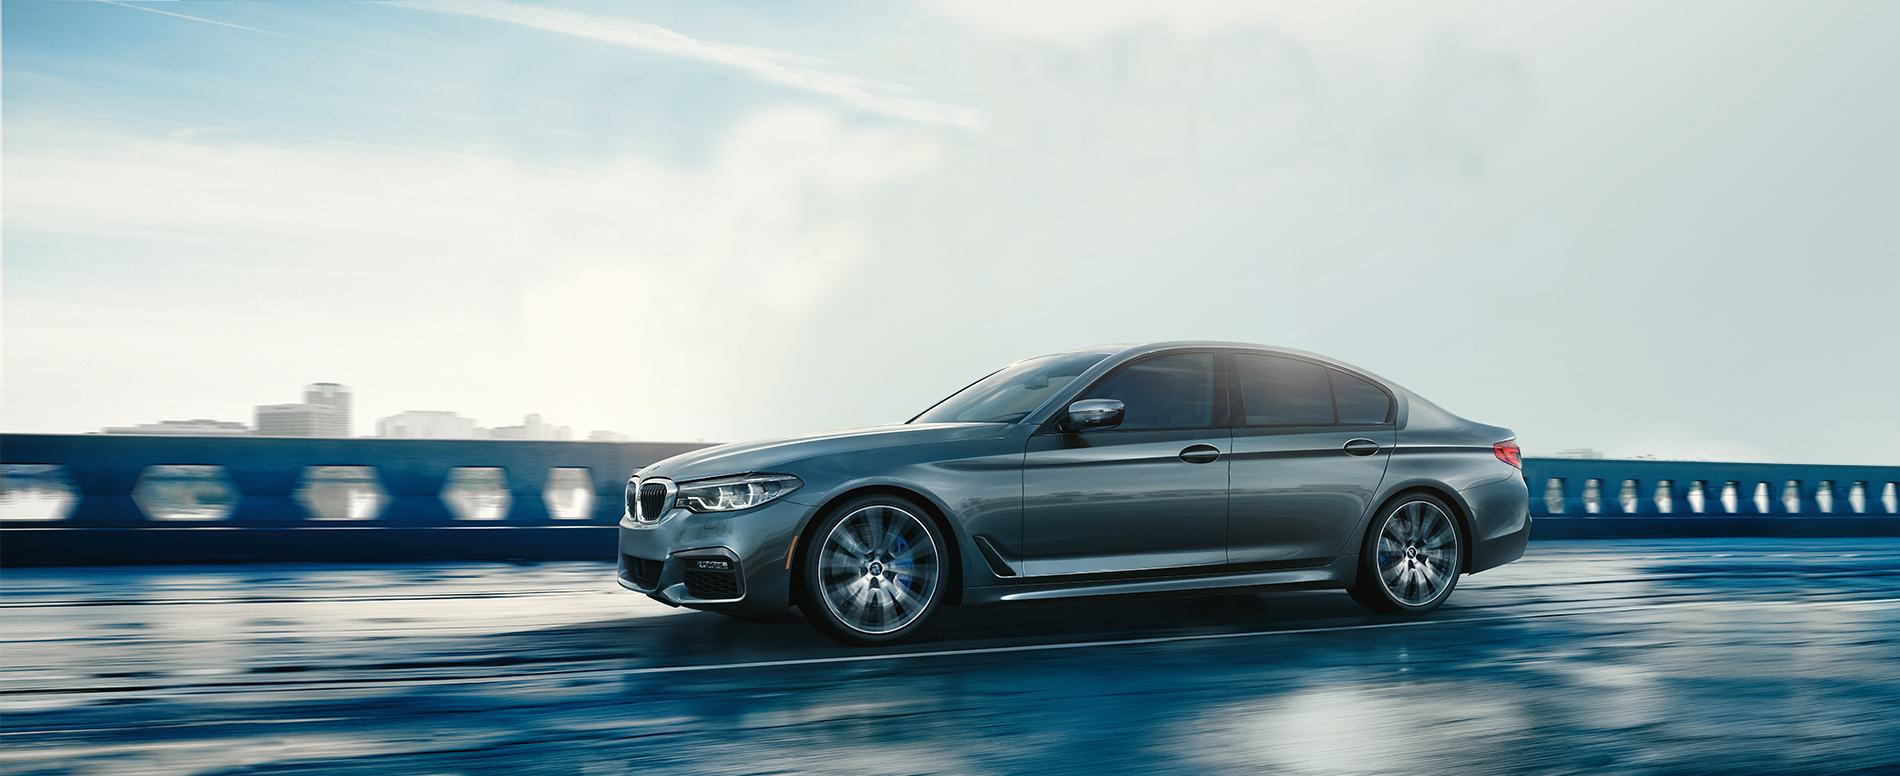 2019 BMW 530i - Braman BMW West Palm Beach